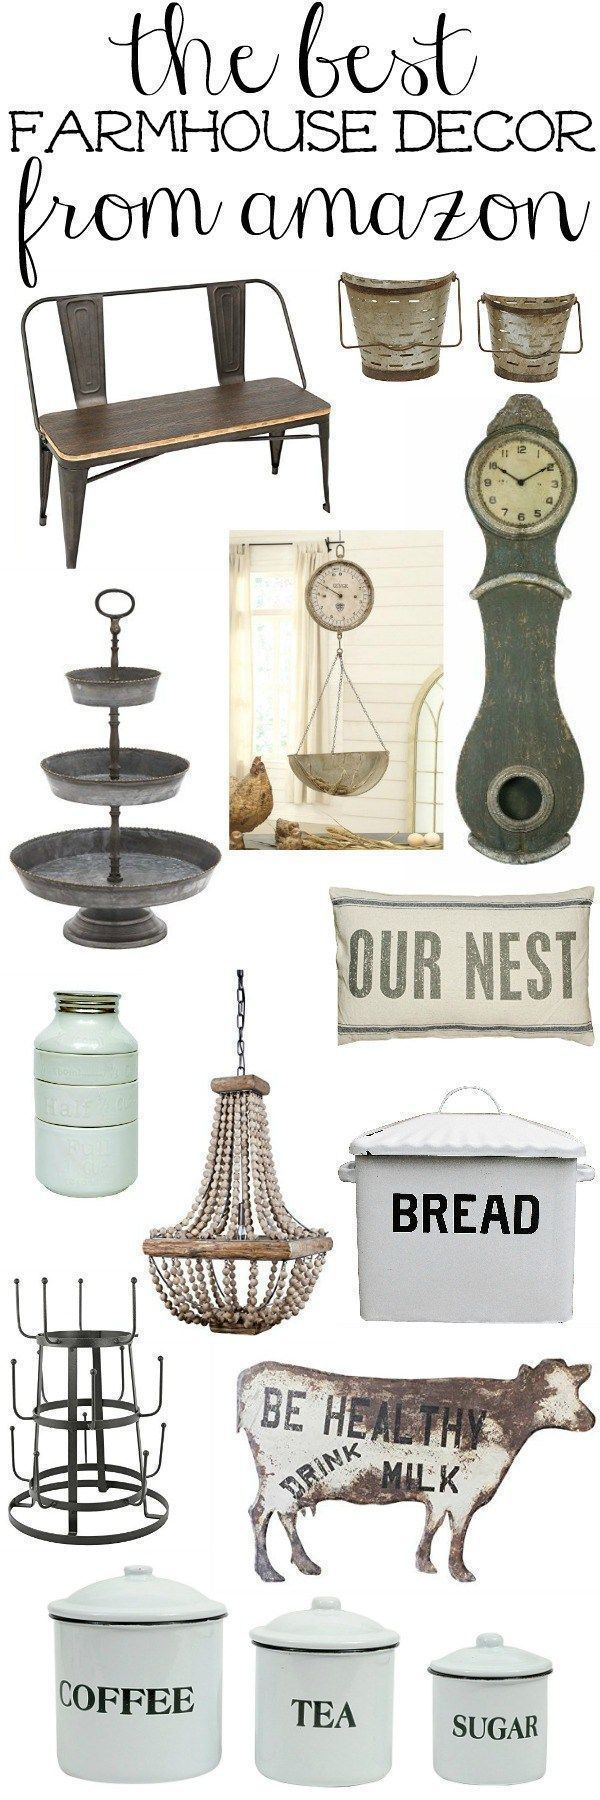 awesome awesome awesome The Best Farmhouse Decor From Amazon - by www.cool-homedeco........ by http://www.top99-home-decor-pics.us/country-homes-decor/awesome-awesome-the-best-farmhouse-decor-from-amazon-by-www-cool-homedeco/